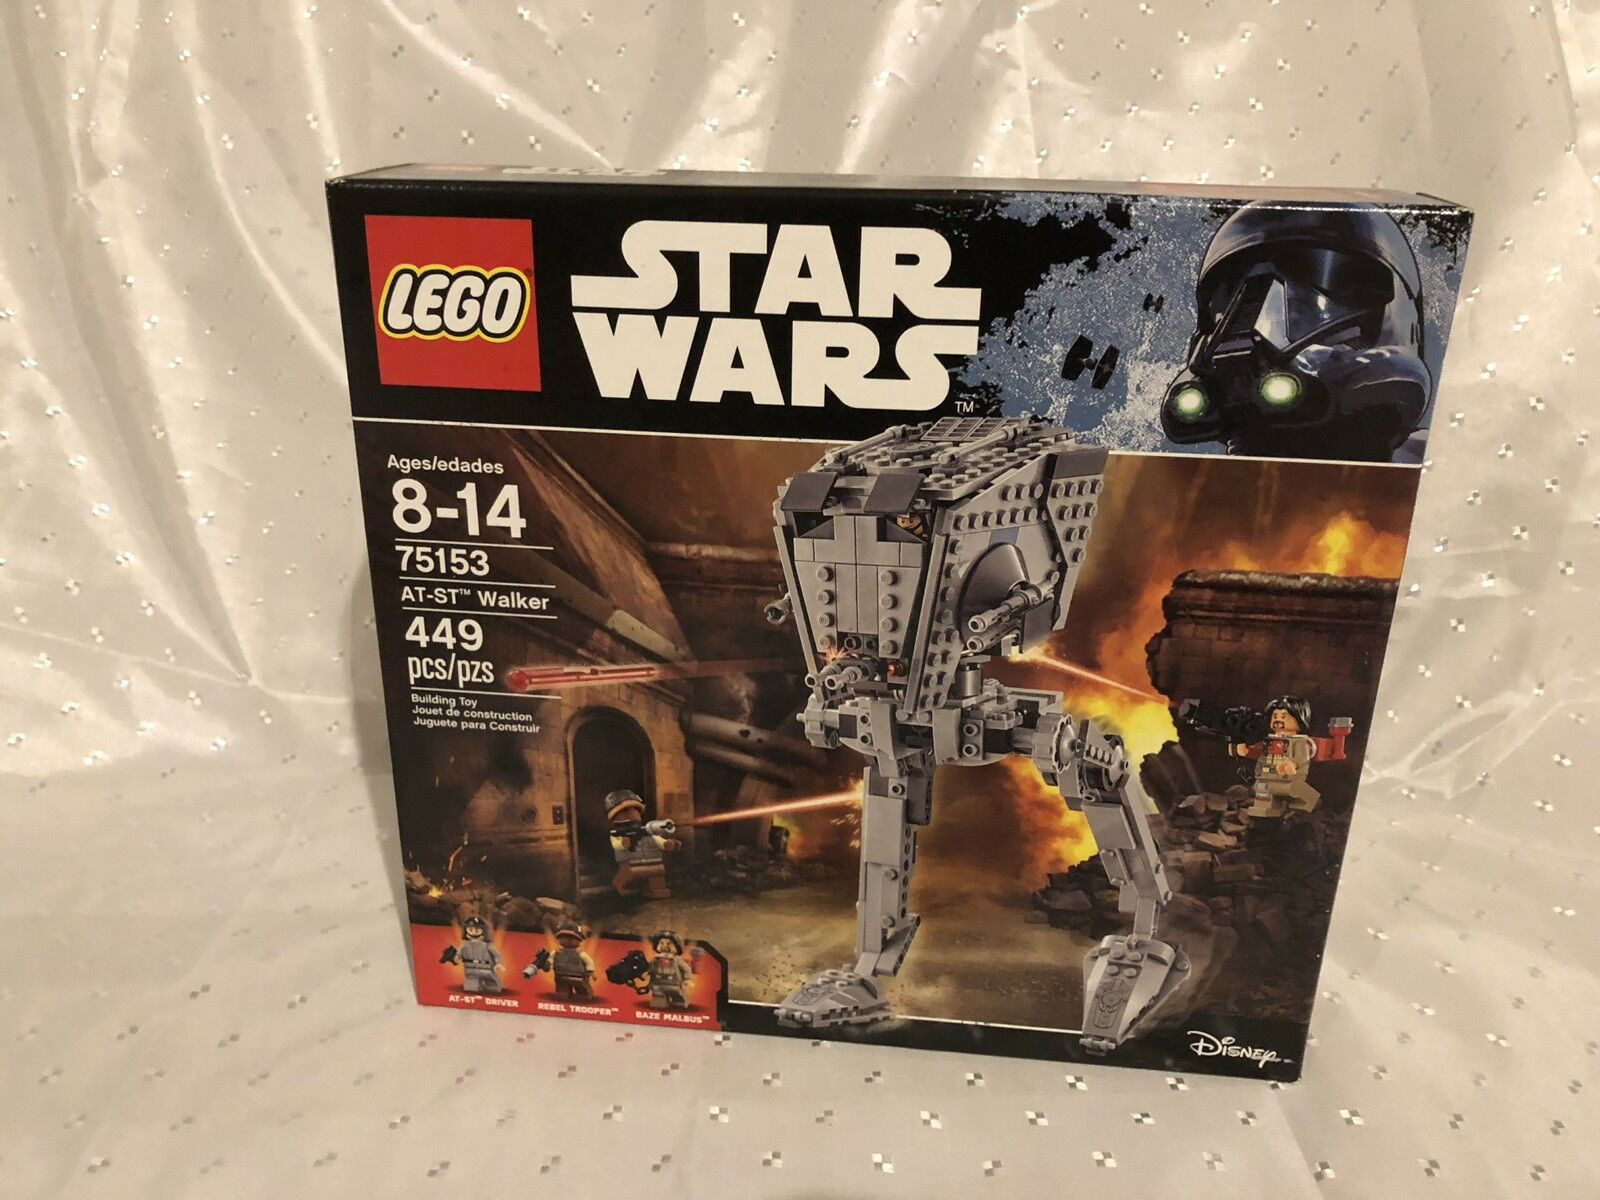 LEGO Star Wars AT-ST Walker (75153) - New and Sealed